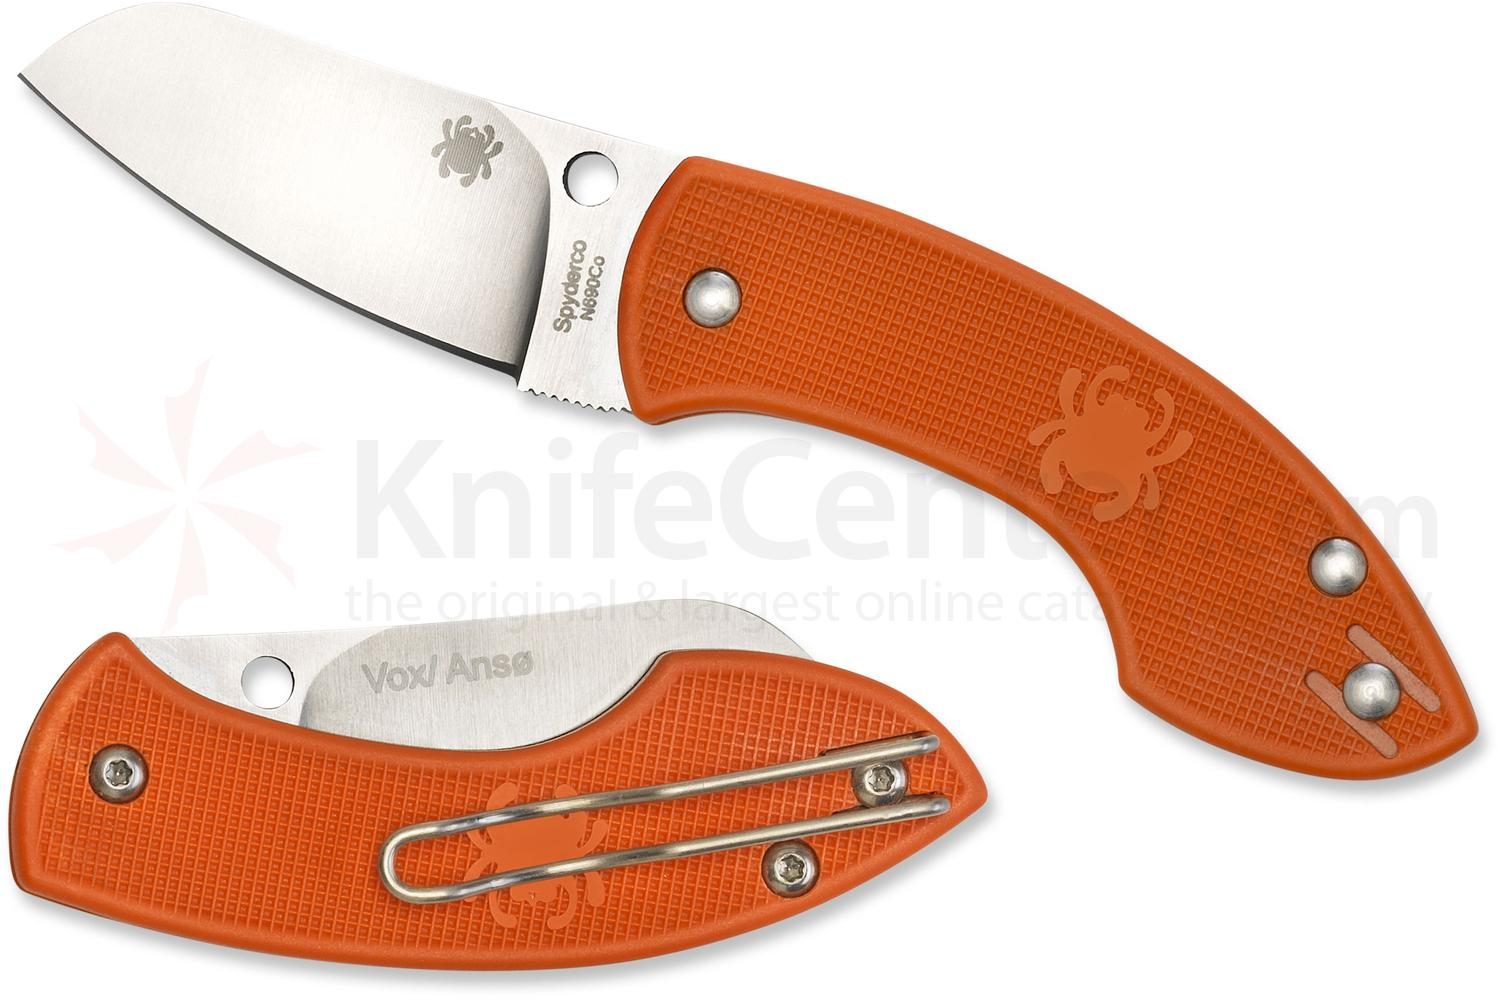 Spyderco C163POR Pingo Folding Knife 2.35 inch N690CO Satin Plain Blade, Orange FRN Handles